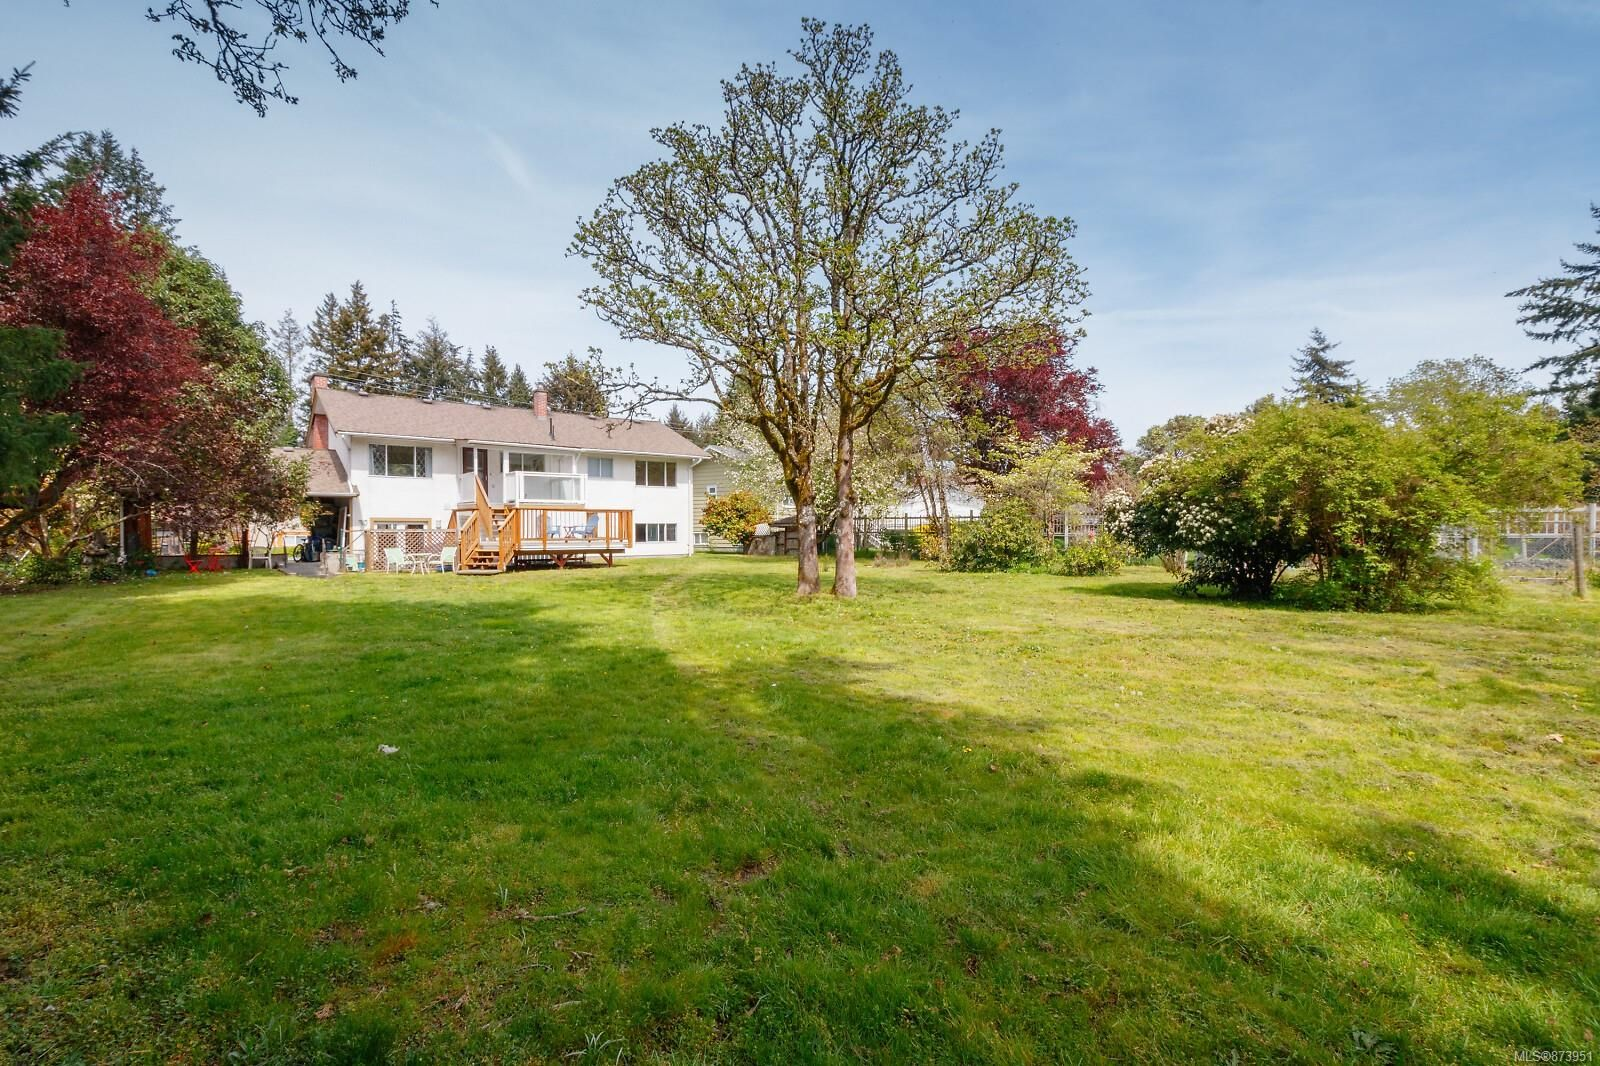 Main Photo: 2313 Marlene Dr in : Co Colwood Lake House for sale (Colwood)  : MLS®# 873951